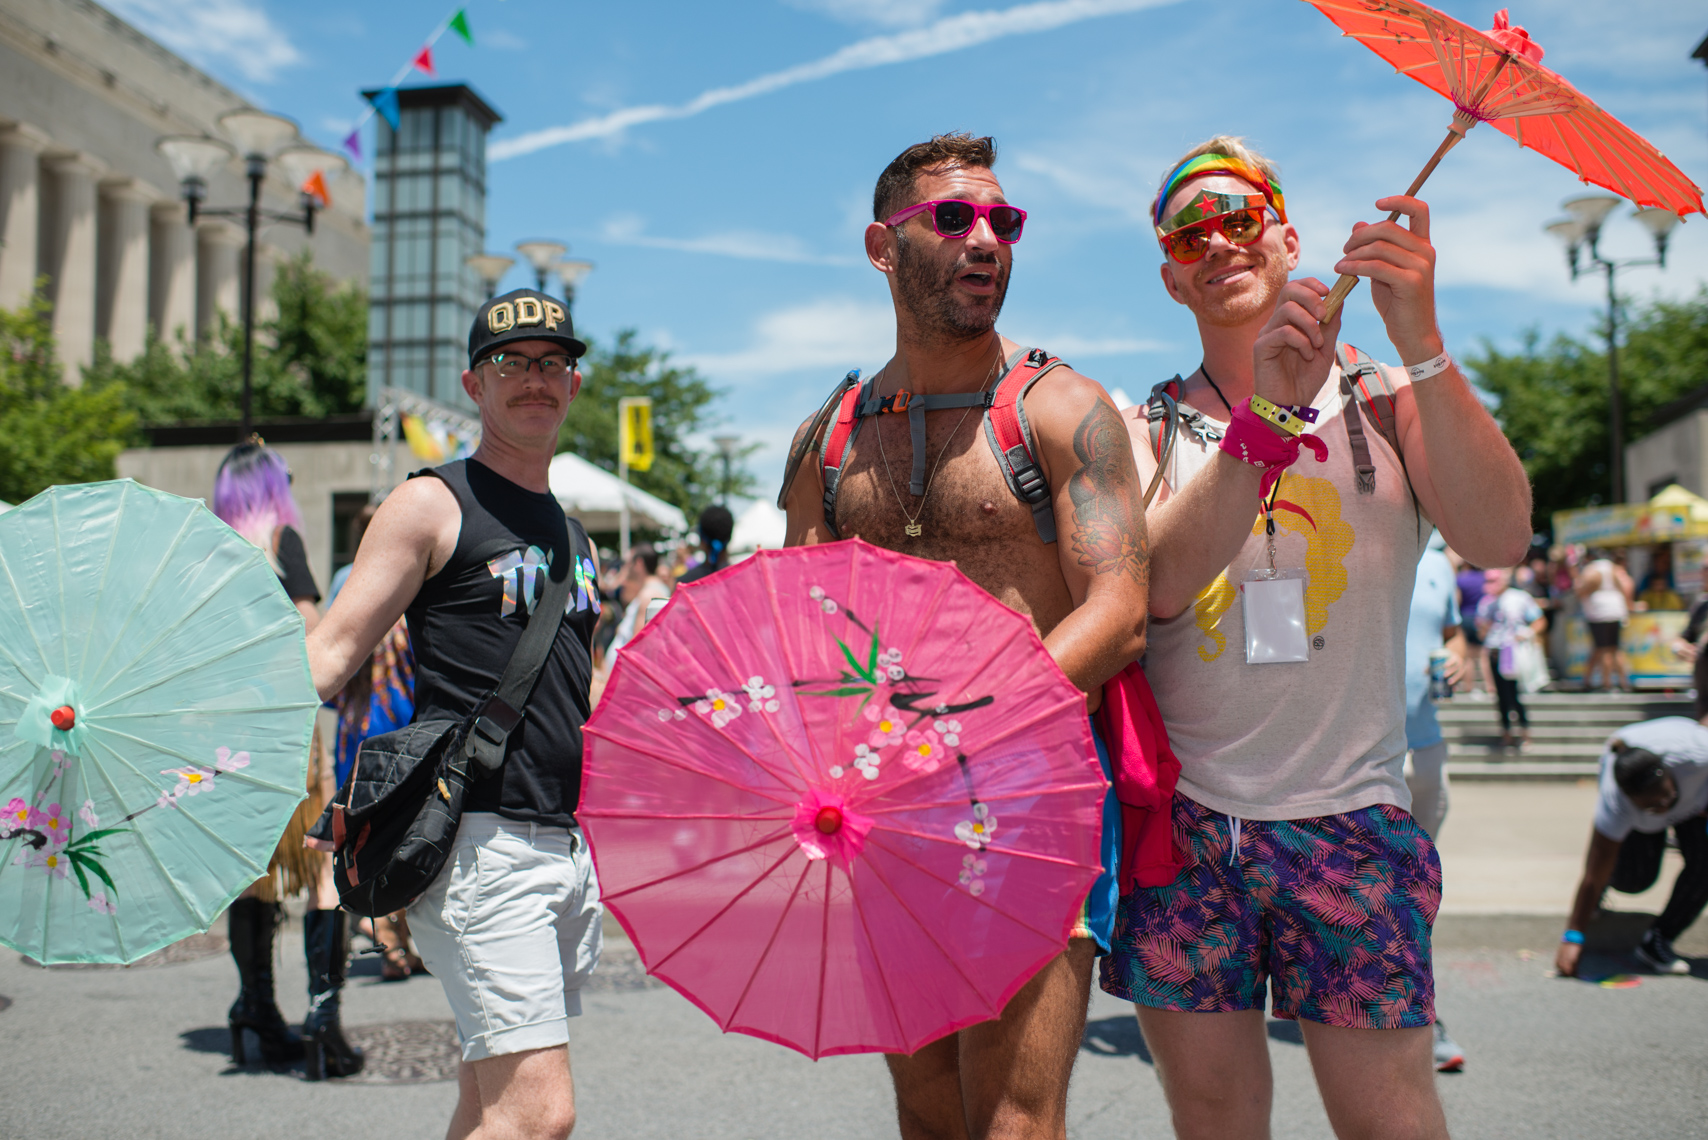 Nashville Pride Festival 2017 | Photographer + Director, Kristina Krug | authentic, authenticity, bisexual, celebrate, celebration, civil, civil liberties, courage, dancing, documentary, drag, emotions, equality, esteem, fearless, festival, festive, free, freedom, friends, fun, gay, happy, journalism, joy, joyful, Kristina Krug, krug photo, lesbian, LGBT, LGBTQ, liberty, love, love wins, loved, love is love, loveliness, lovers, love wins, men, National Pride Day, parade, people, photographer, photojournalism, photojournalist, Portrait, Predators, pride, Pride Parade, proud, queen, queer, relationship, reportage, respect, rights, safety, self, sexuality, summer, sun, sunny, Transgender, group of gay men with umbrellas at Public Square Park in Nashville Equality Walk and Pride Festival